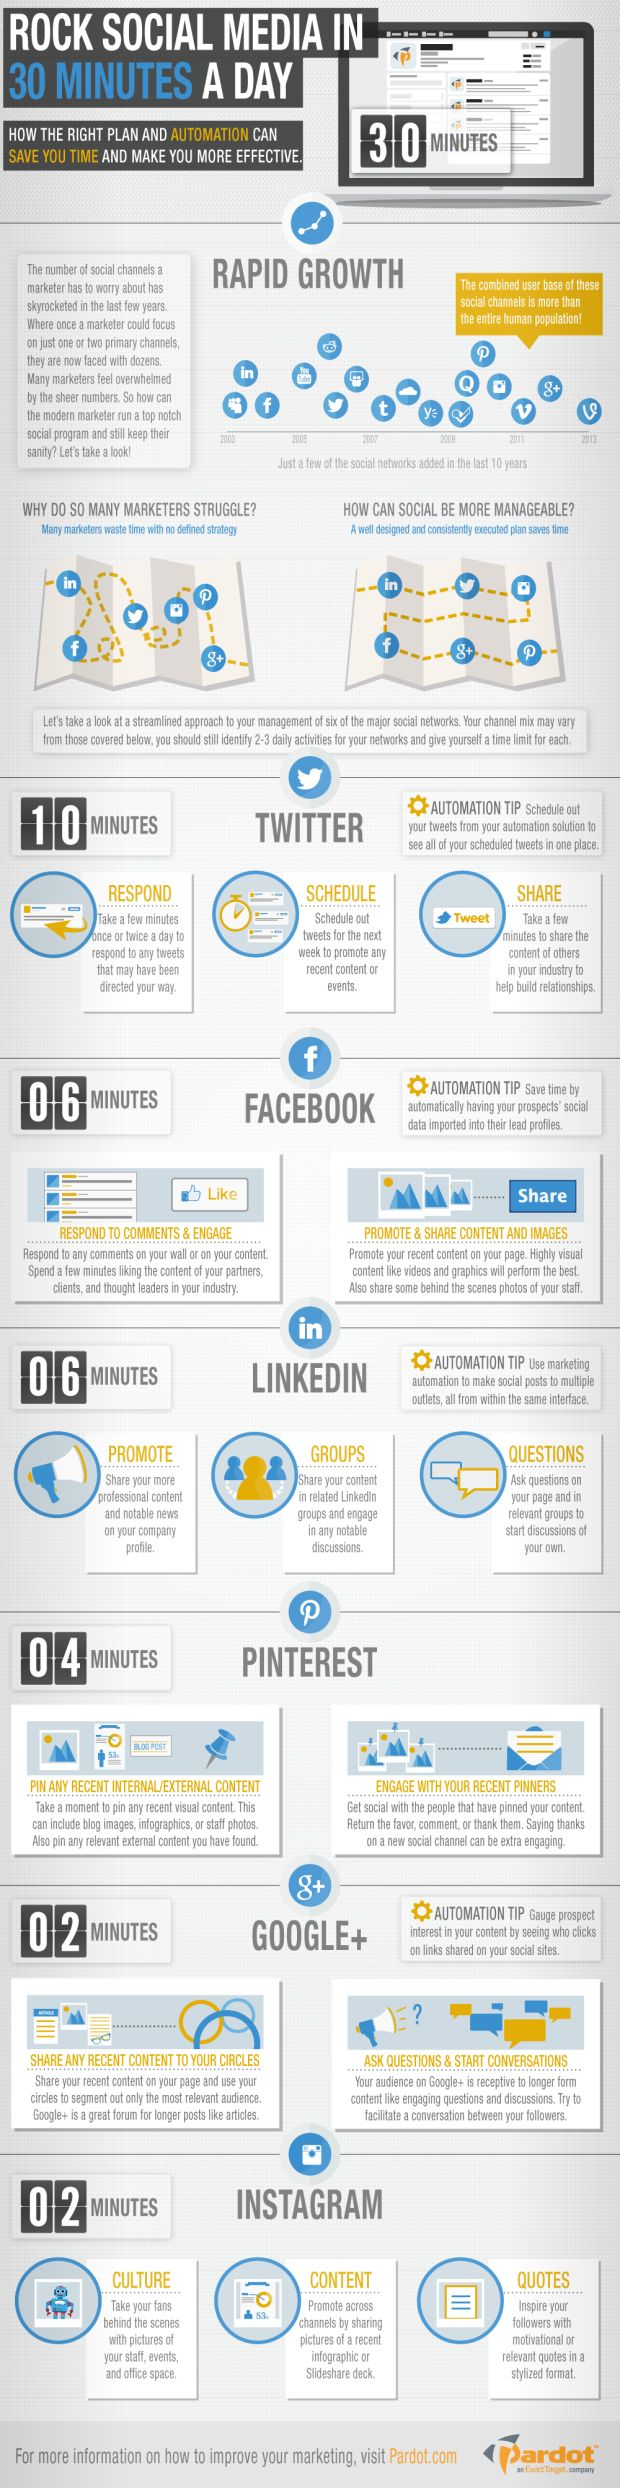 Blog post - How To Improve Your Social Media Skills in 30 Minutes A Day - social media tips